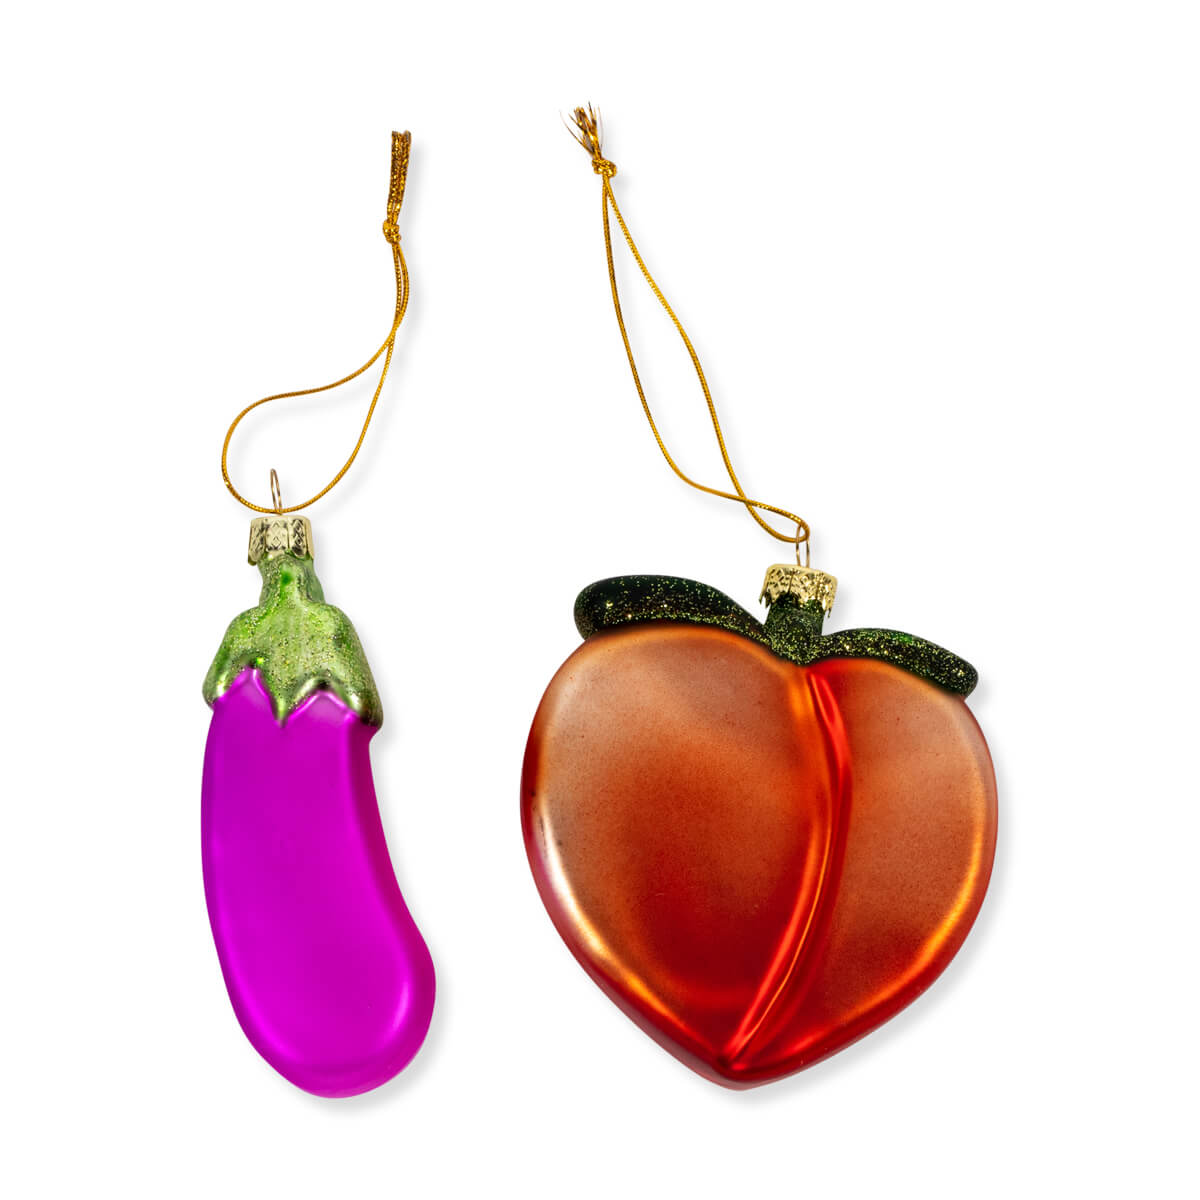 Furbish Studio - Furbish Studio Peach and Eggplant Emoji Christmas Ornament Pair